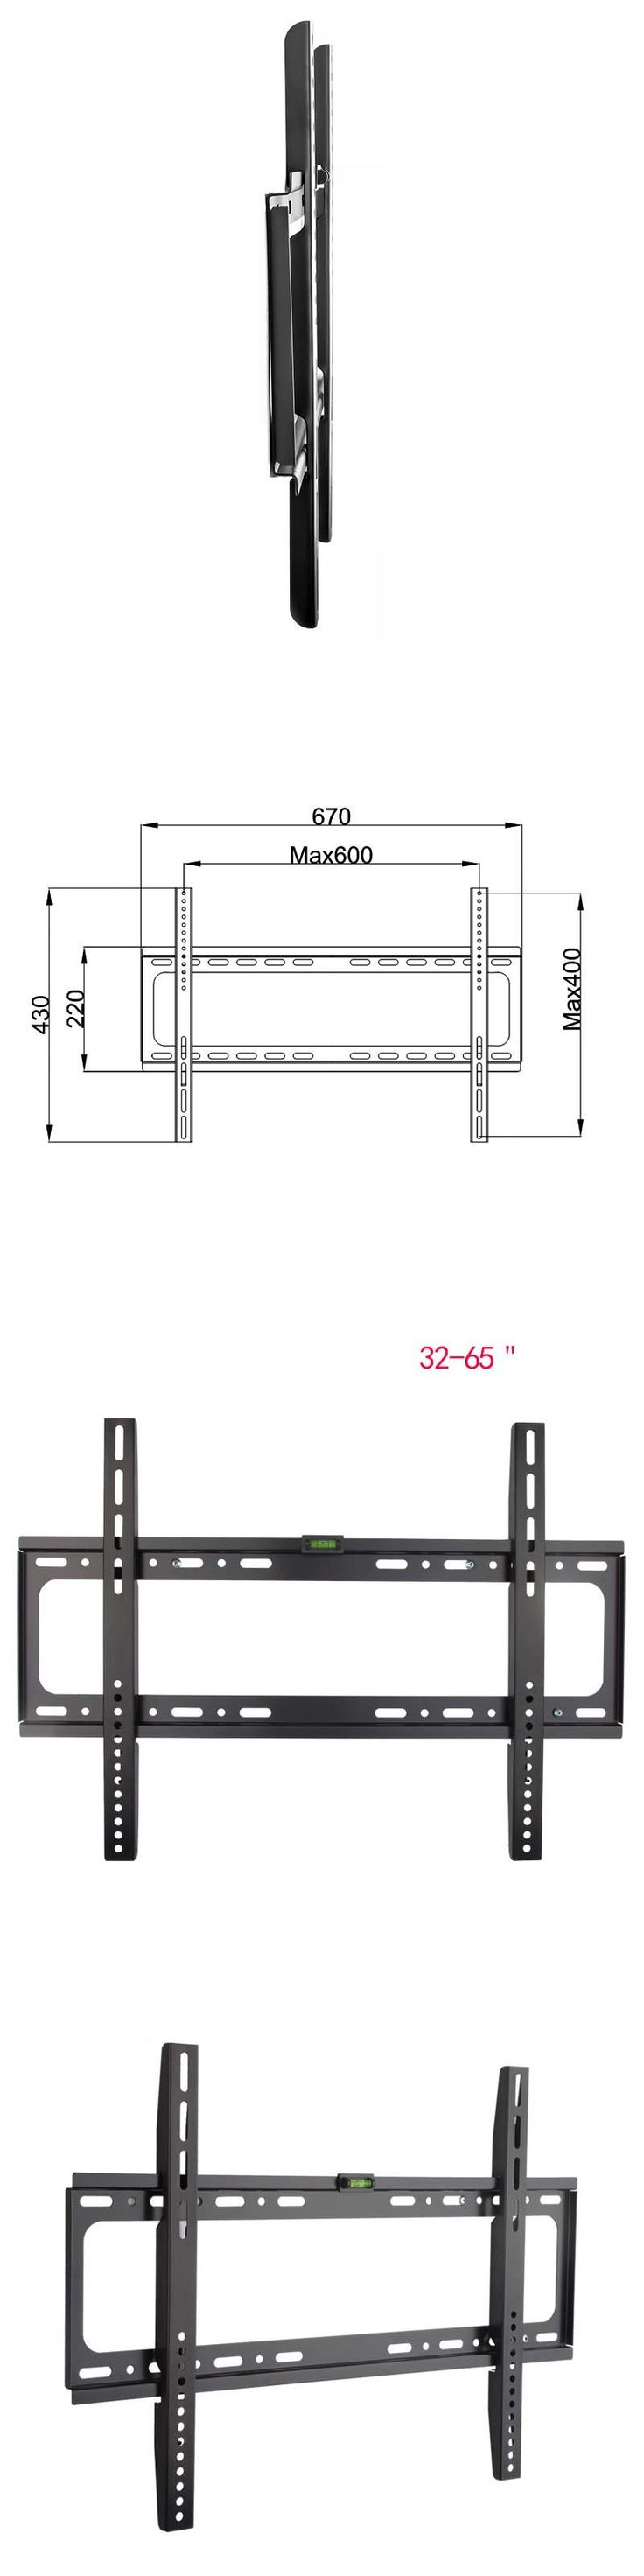 TV Wall Mount Articulating Plasma Fixed LCD LED TV Mount Wall Mount Bracket 32-65 Inch up to VESA 600 x 400mm